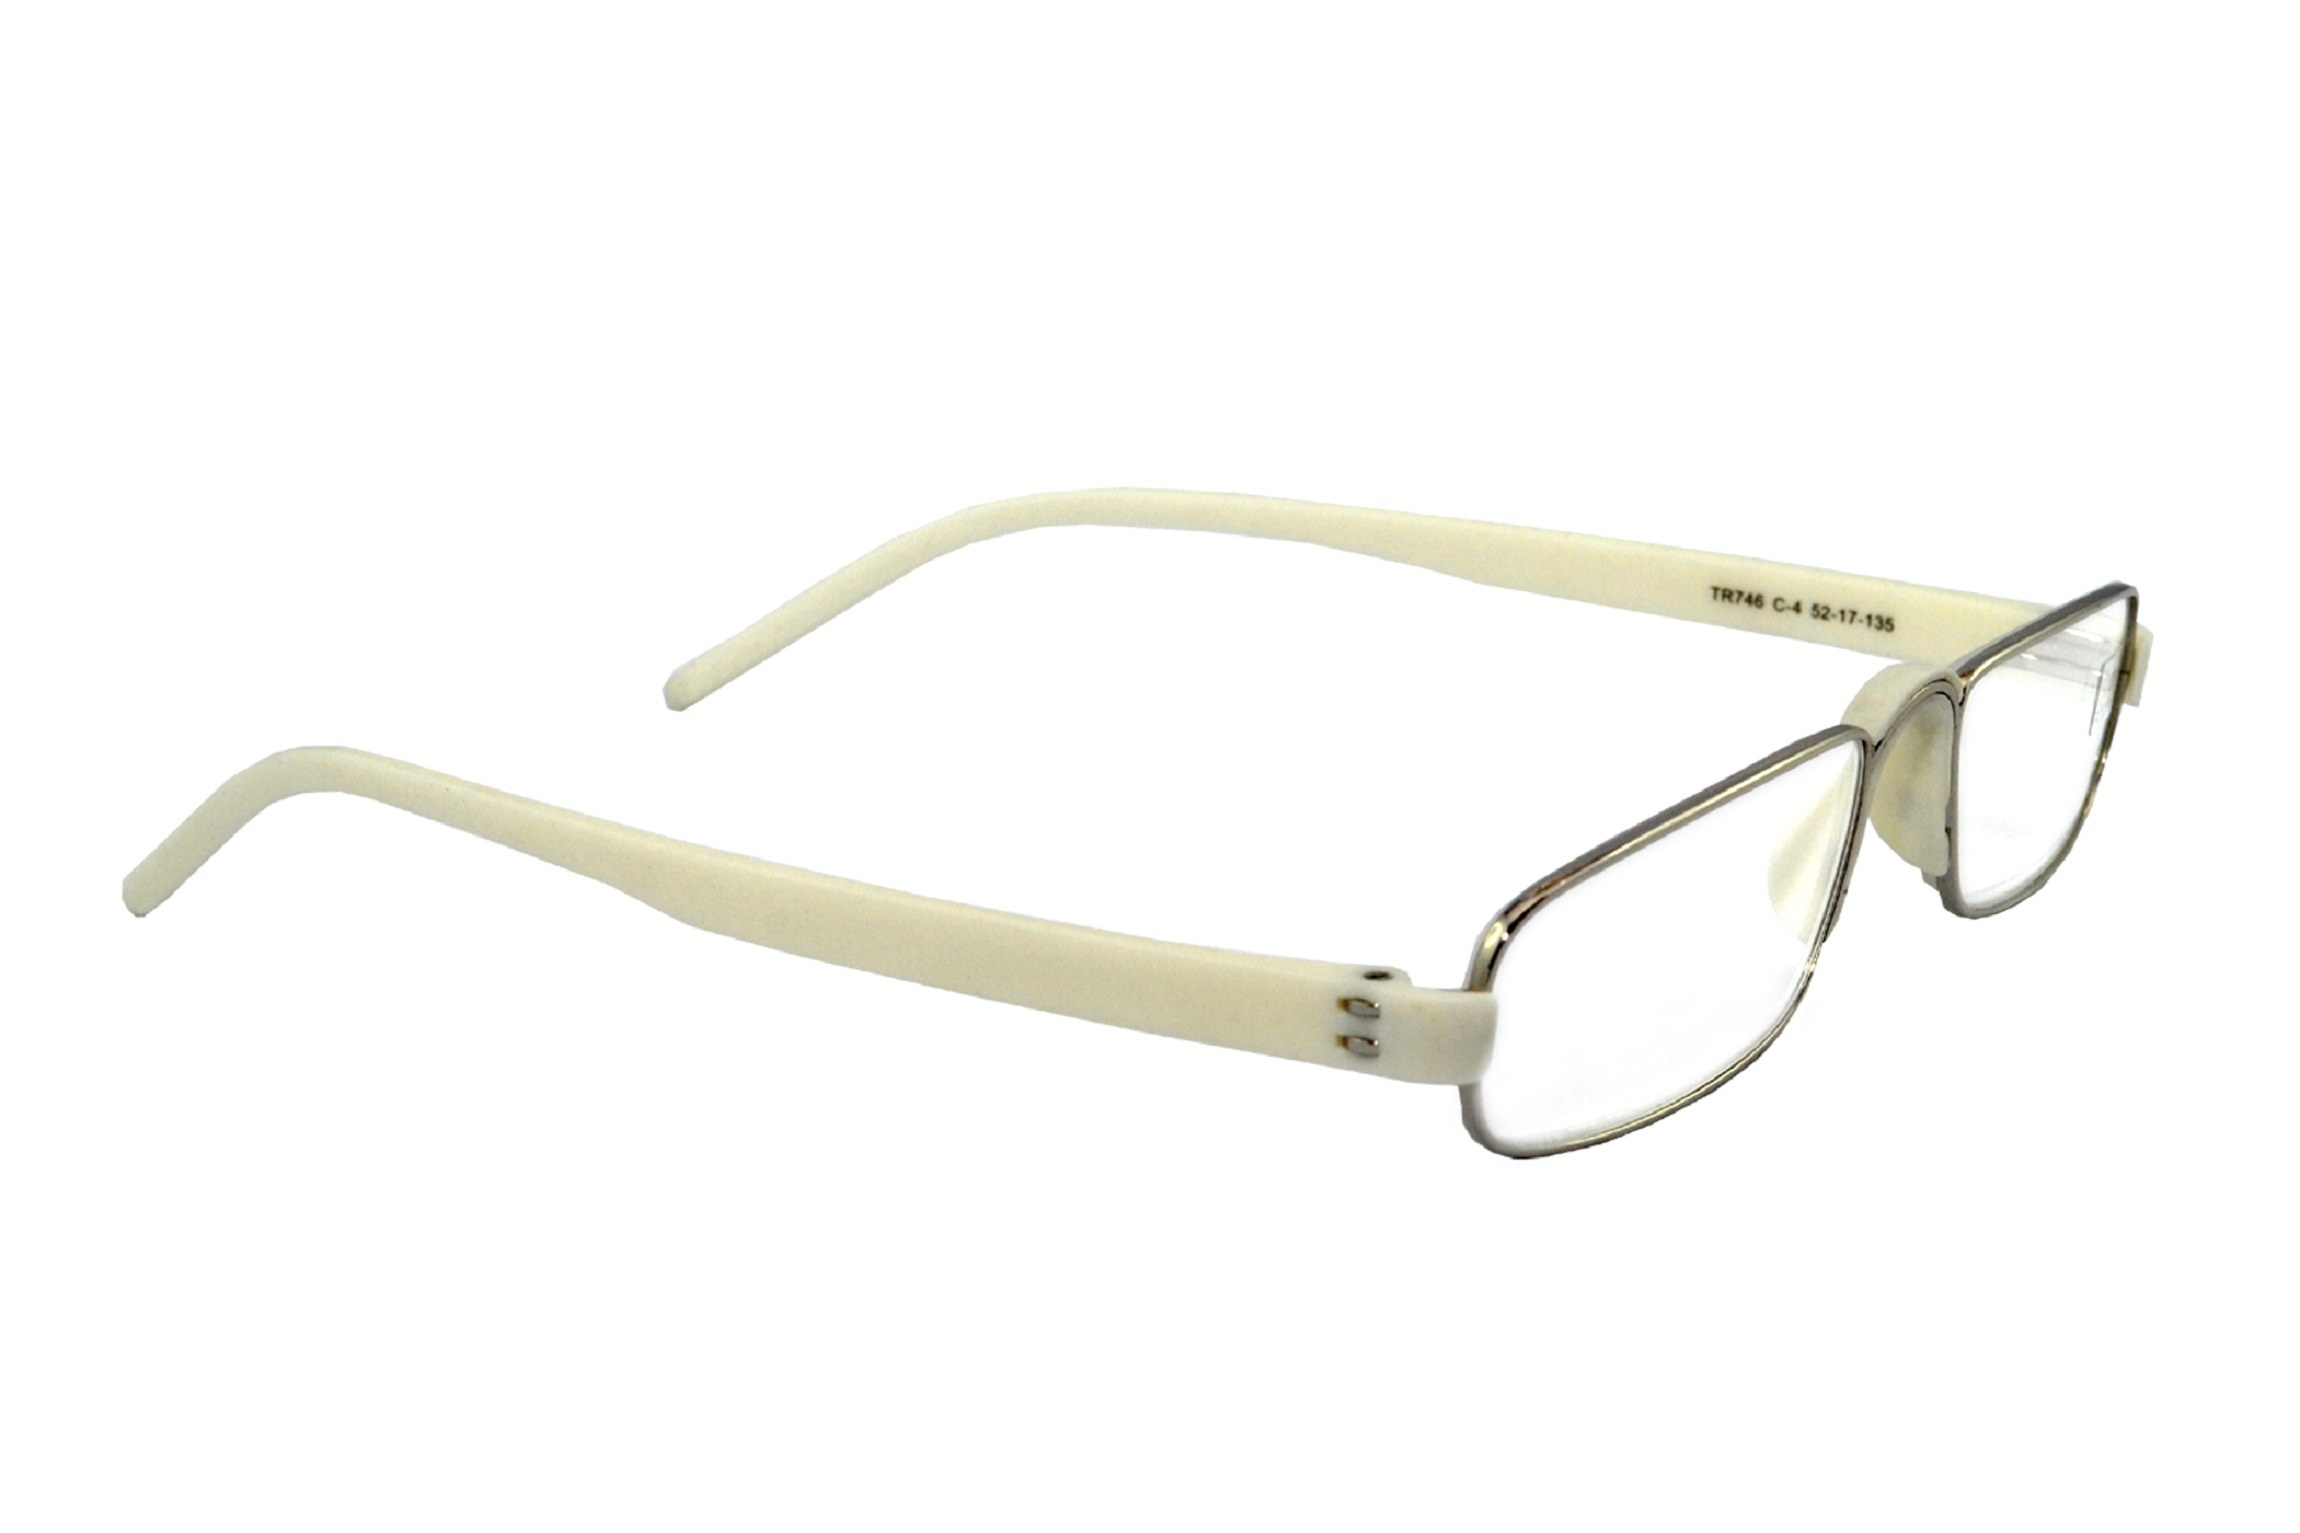 reading glasses 2 25 available at craftsvilla for rs 2400